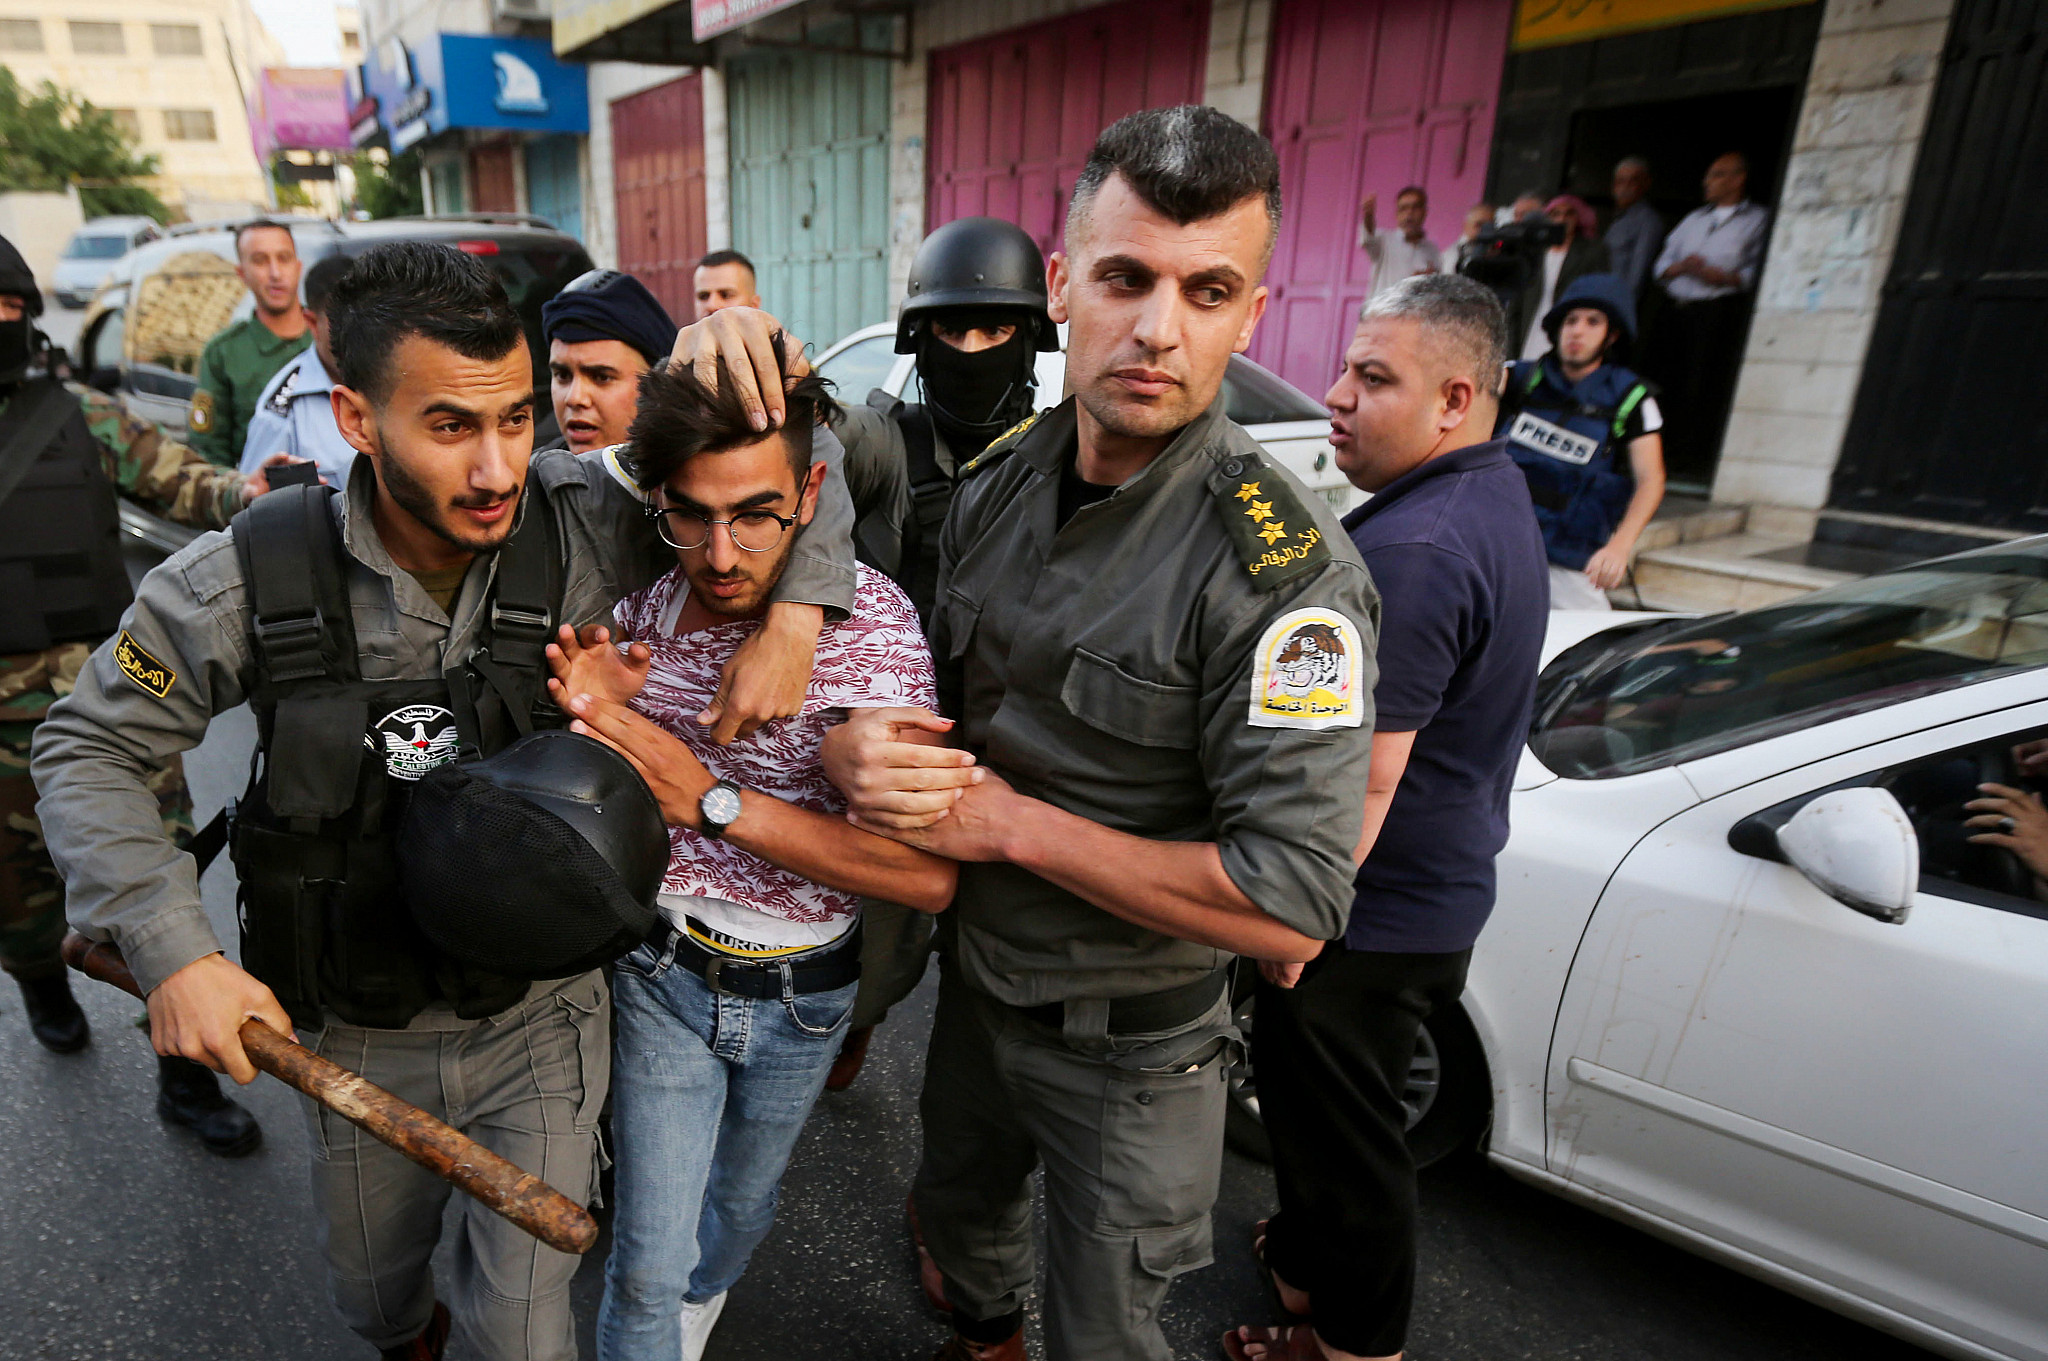 PA security forces prevent supporters of Hizb ut-Tahrir party from praying in Hebron, June 4, 2019. (Wisam Hashlamoun/Flash90)